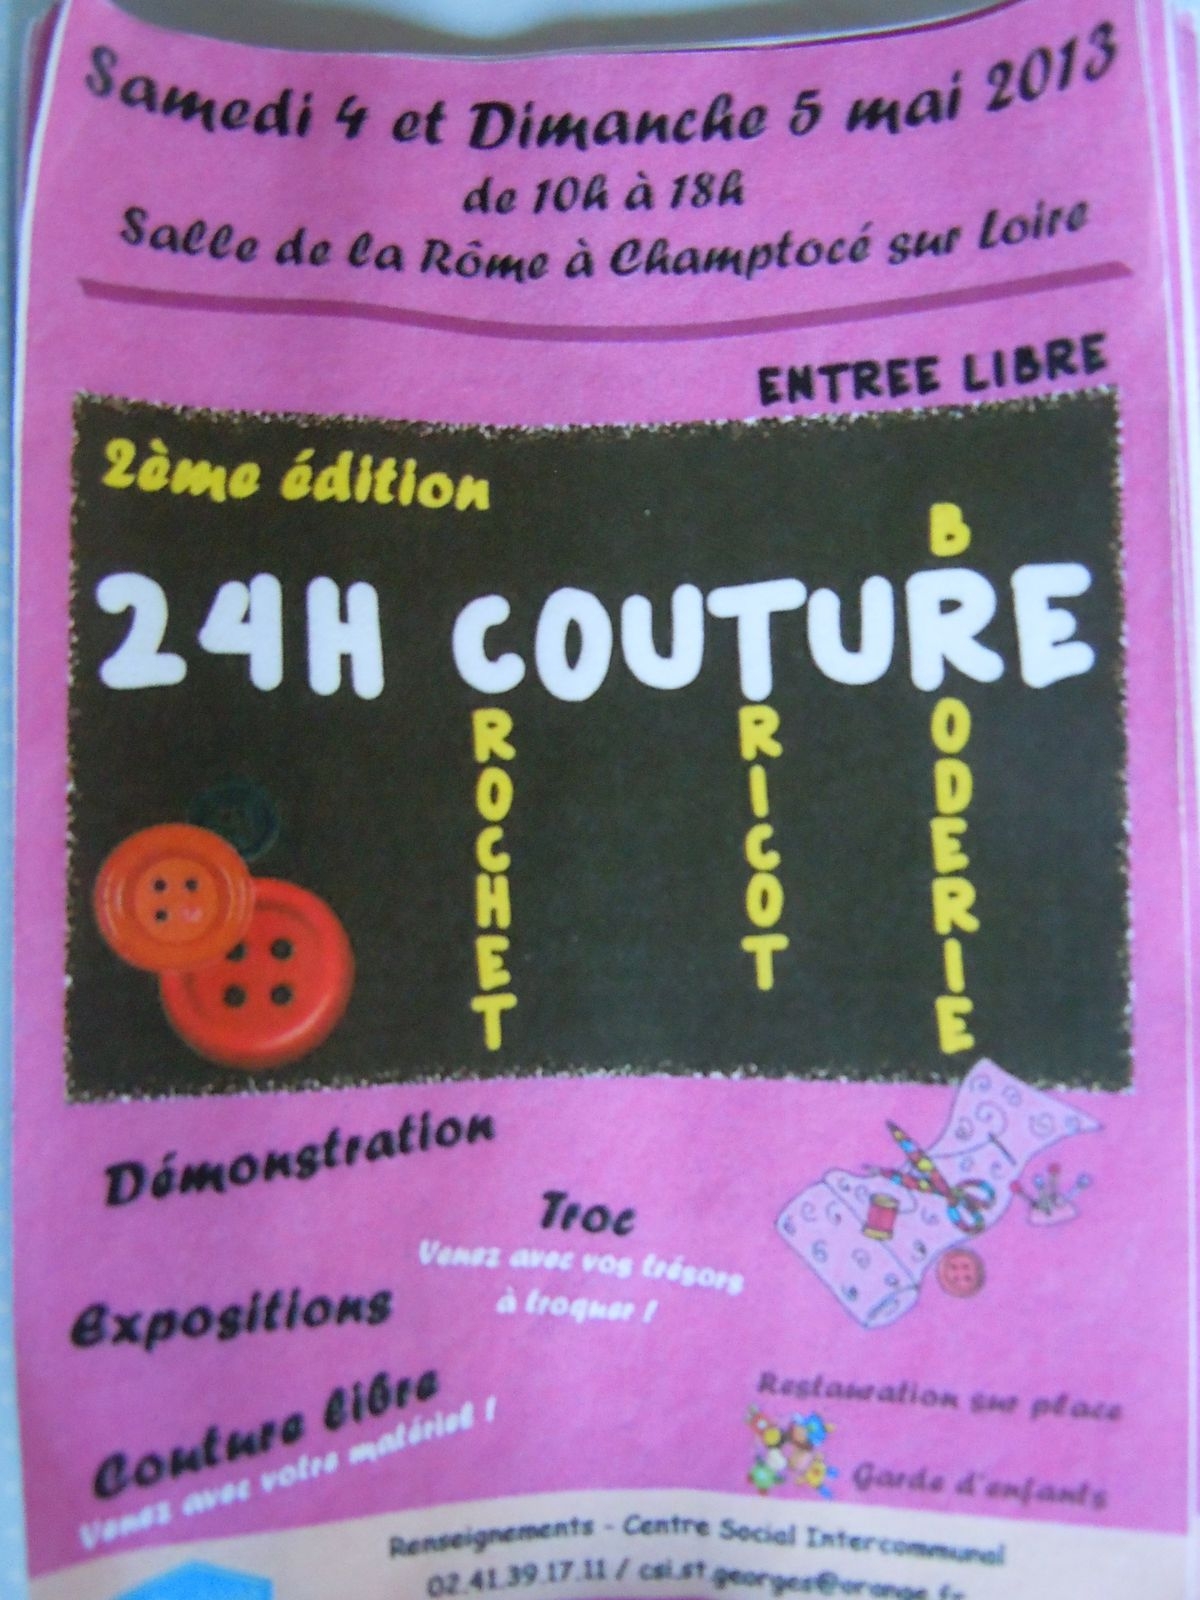 24 H COUTURE